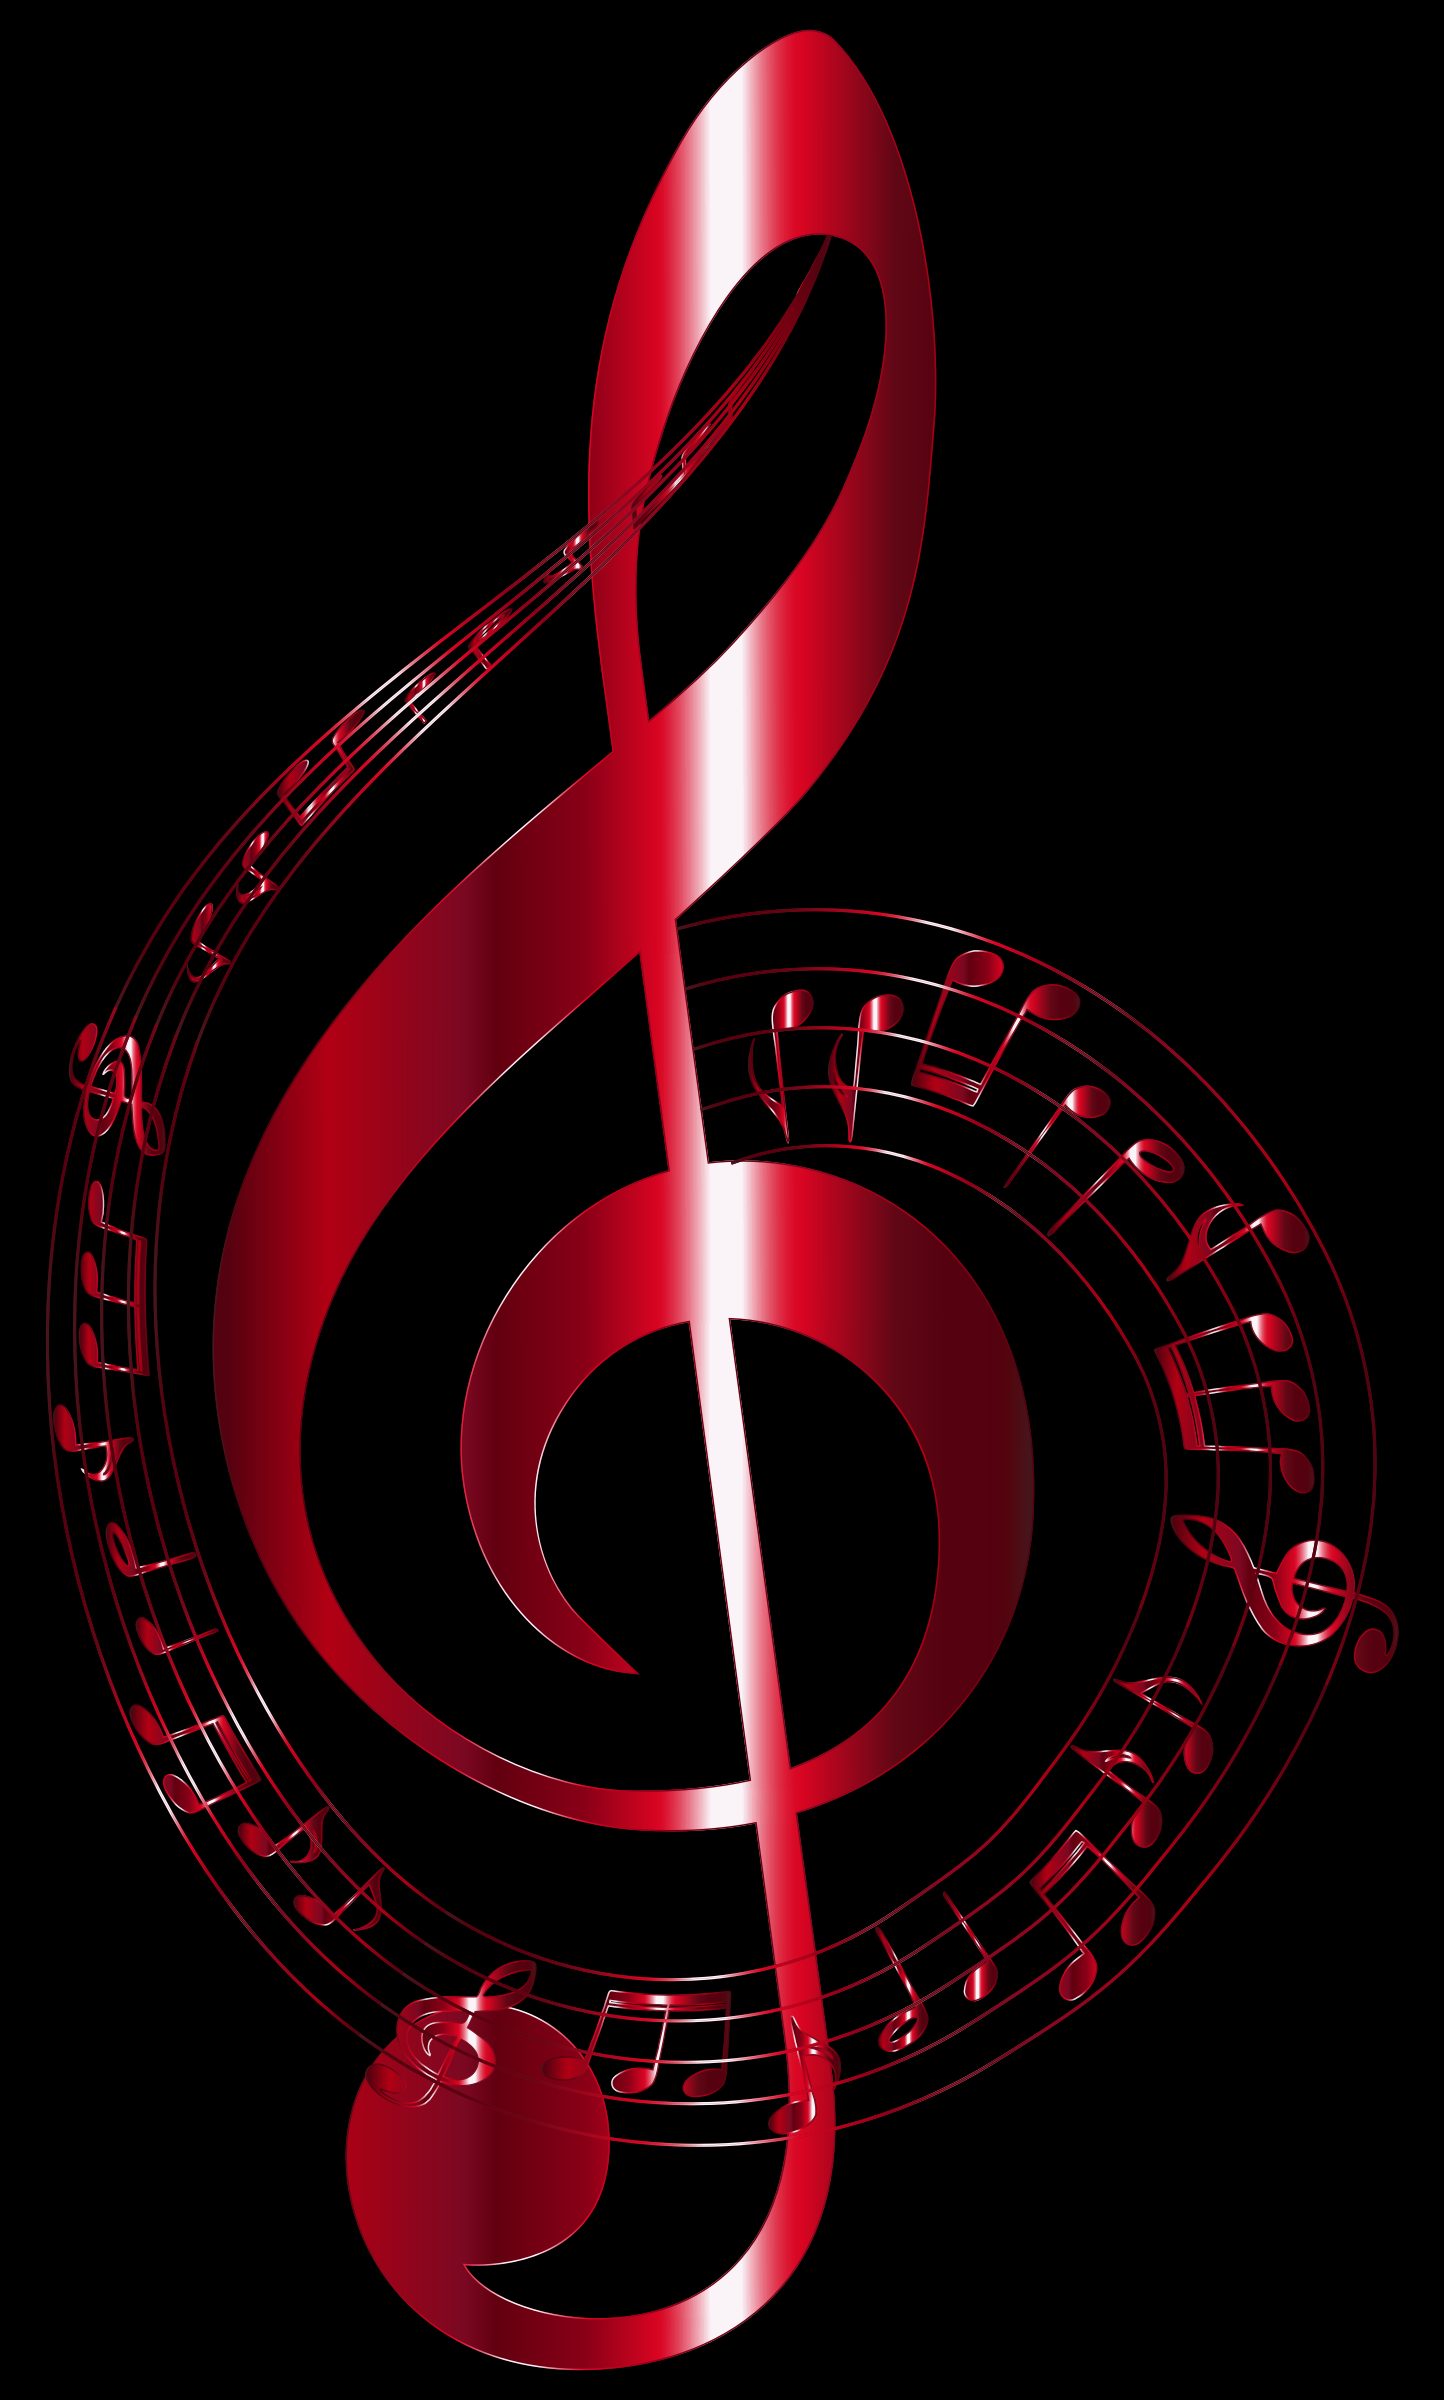 Vermilion Musical Notes Typography by GDJ